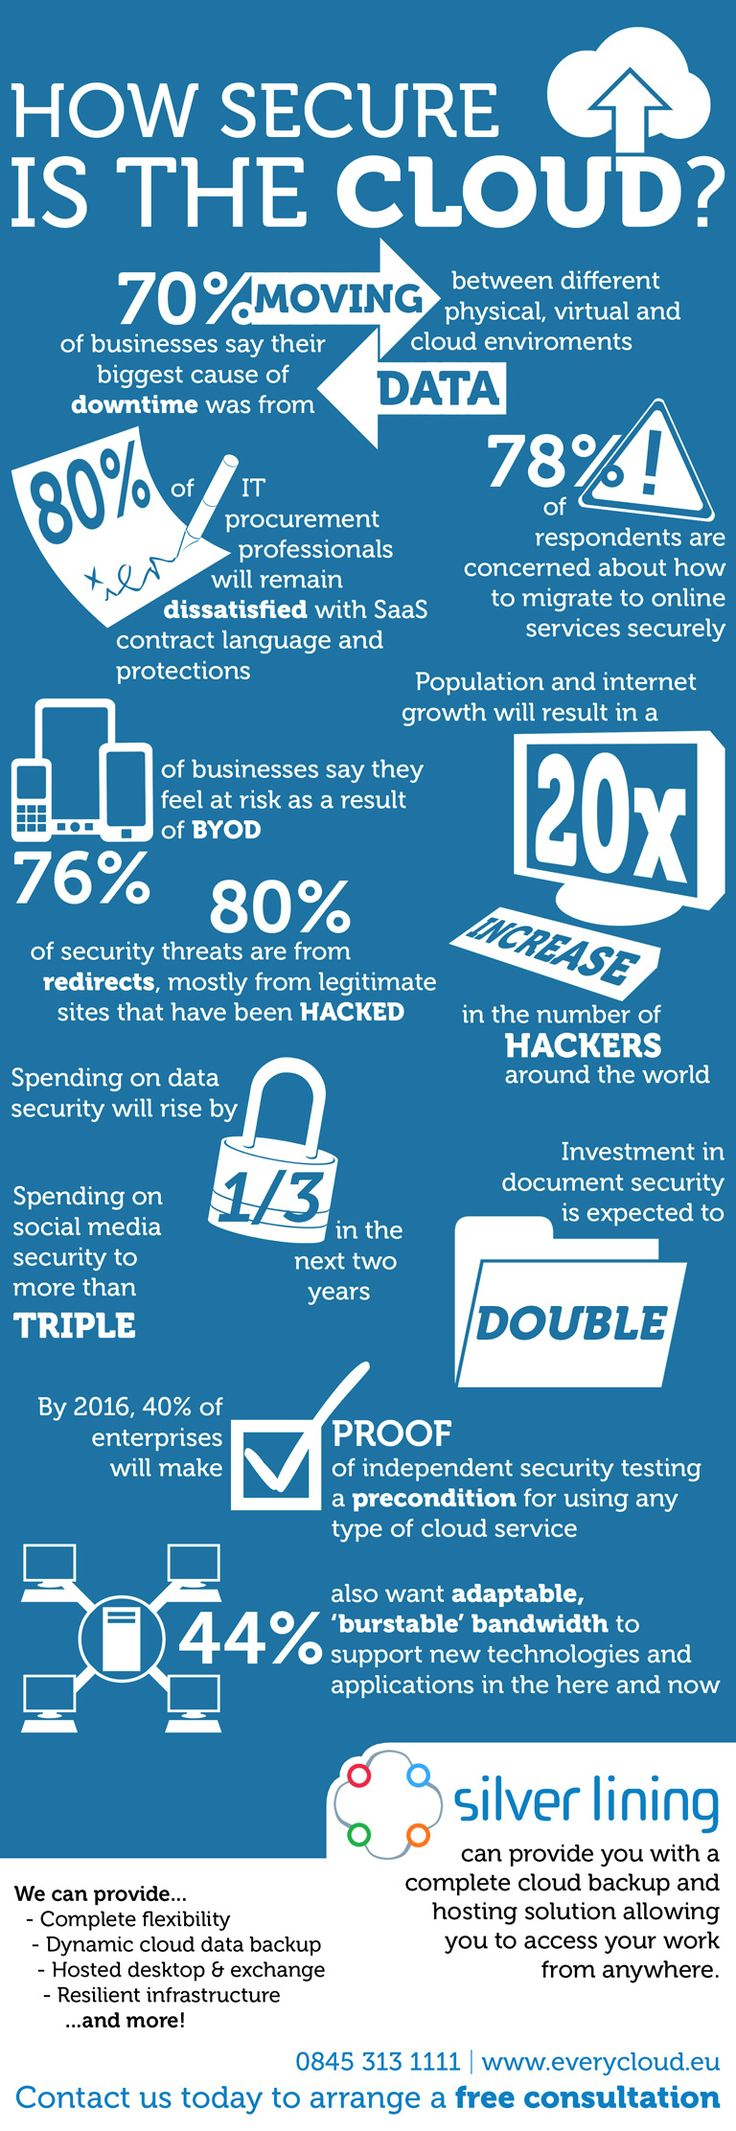 The main issue with 'The Cloud' is how secure it is. The answer is very! Check the infographic to see why.